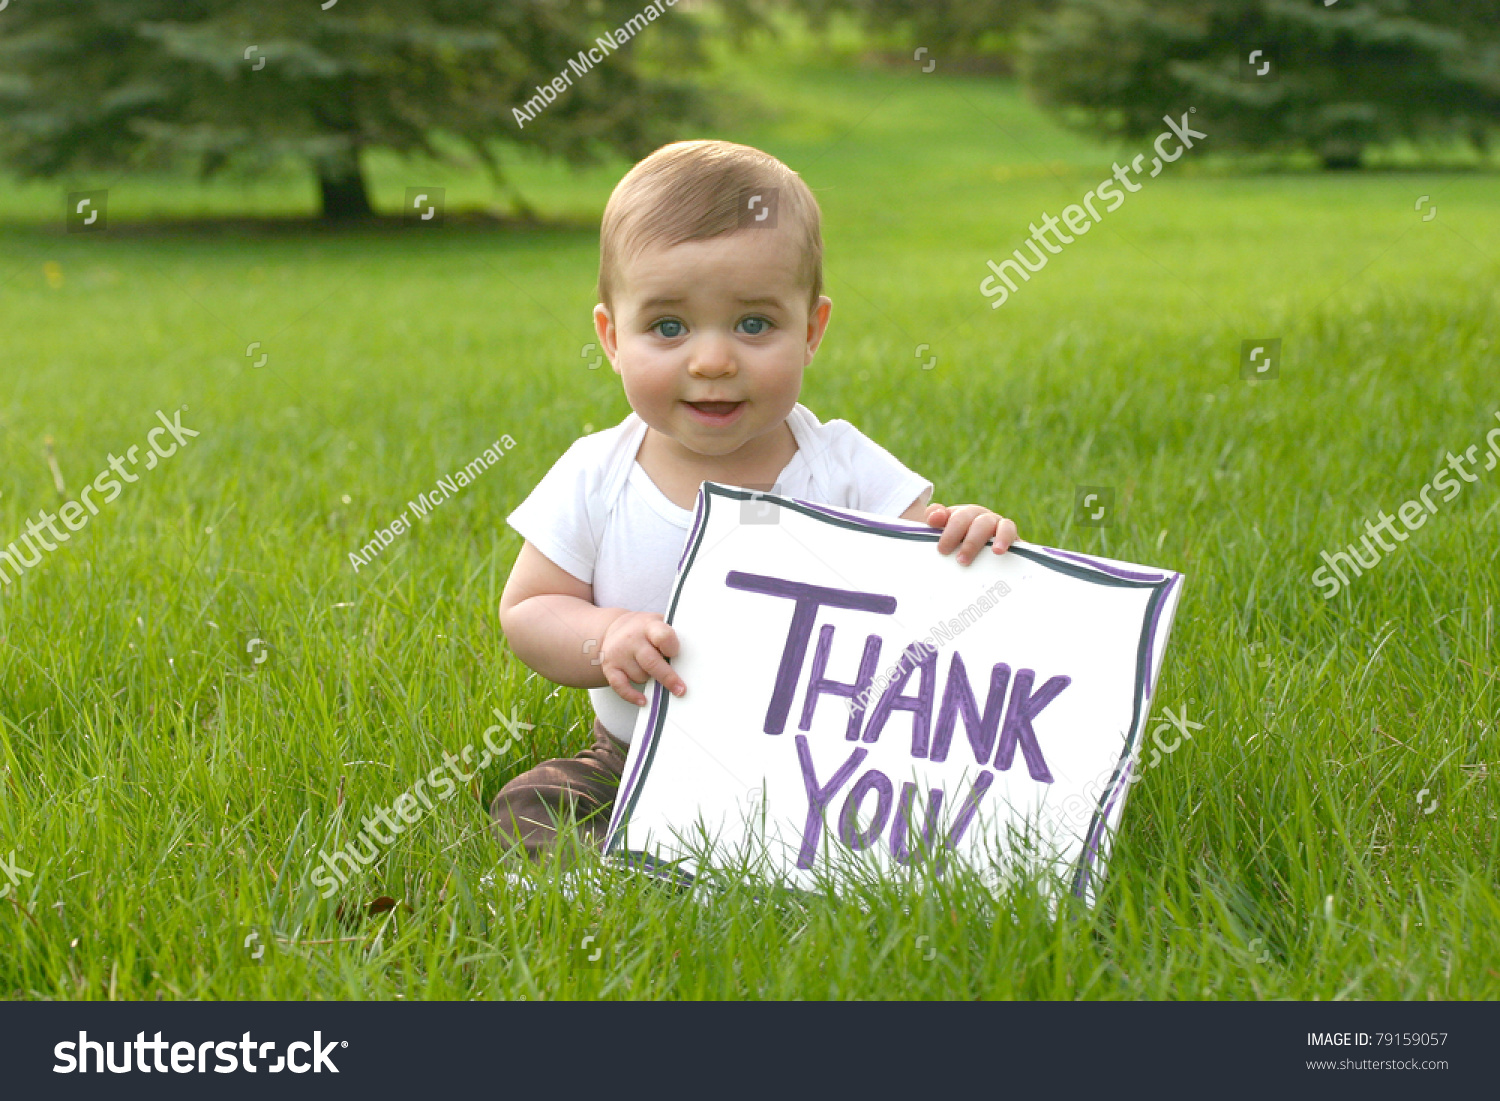 Baby Thank You Sign Stock Photo 79159057 - Shutterstock